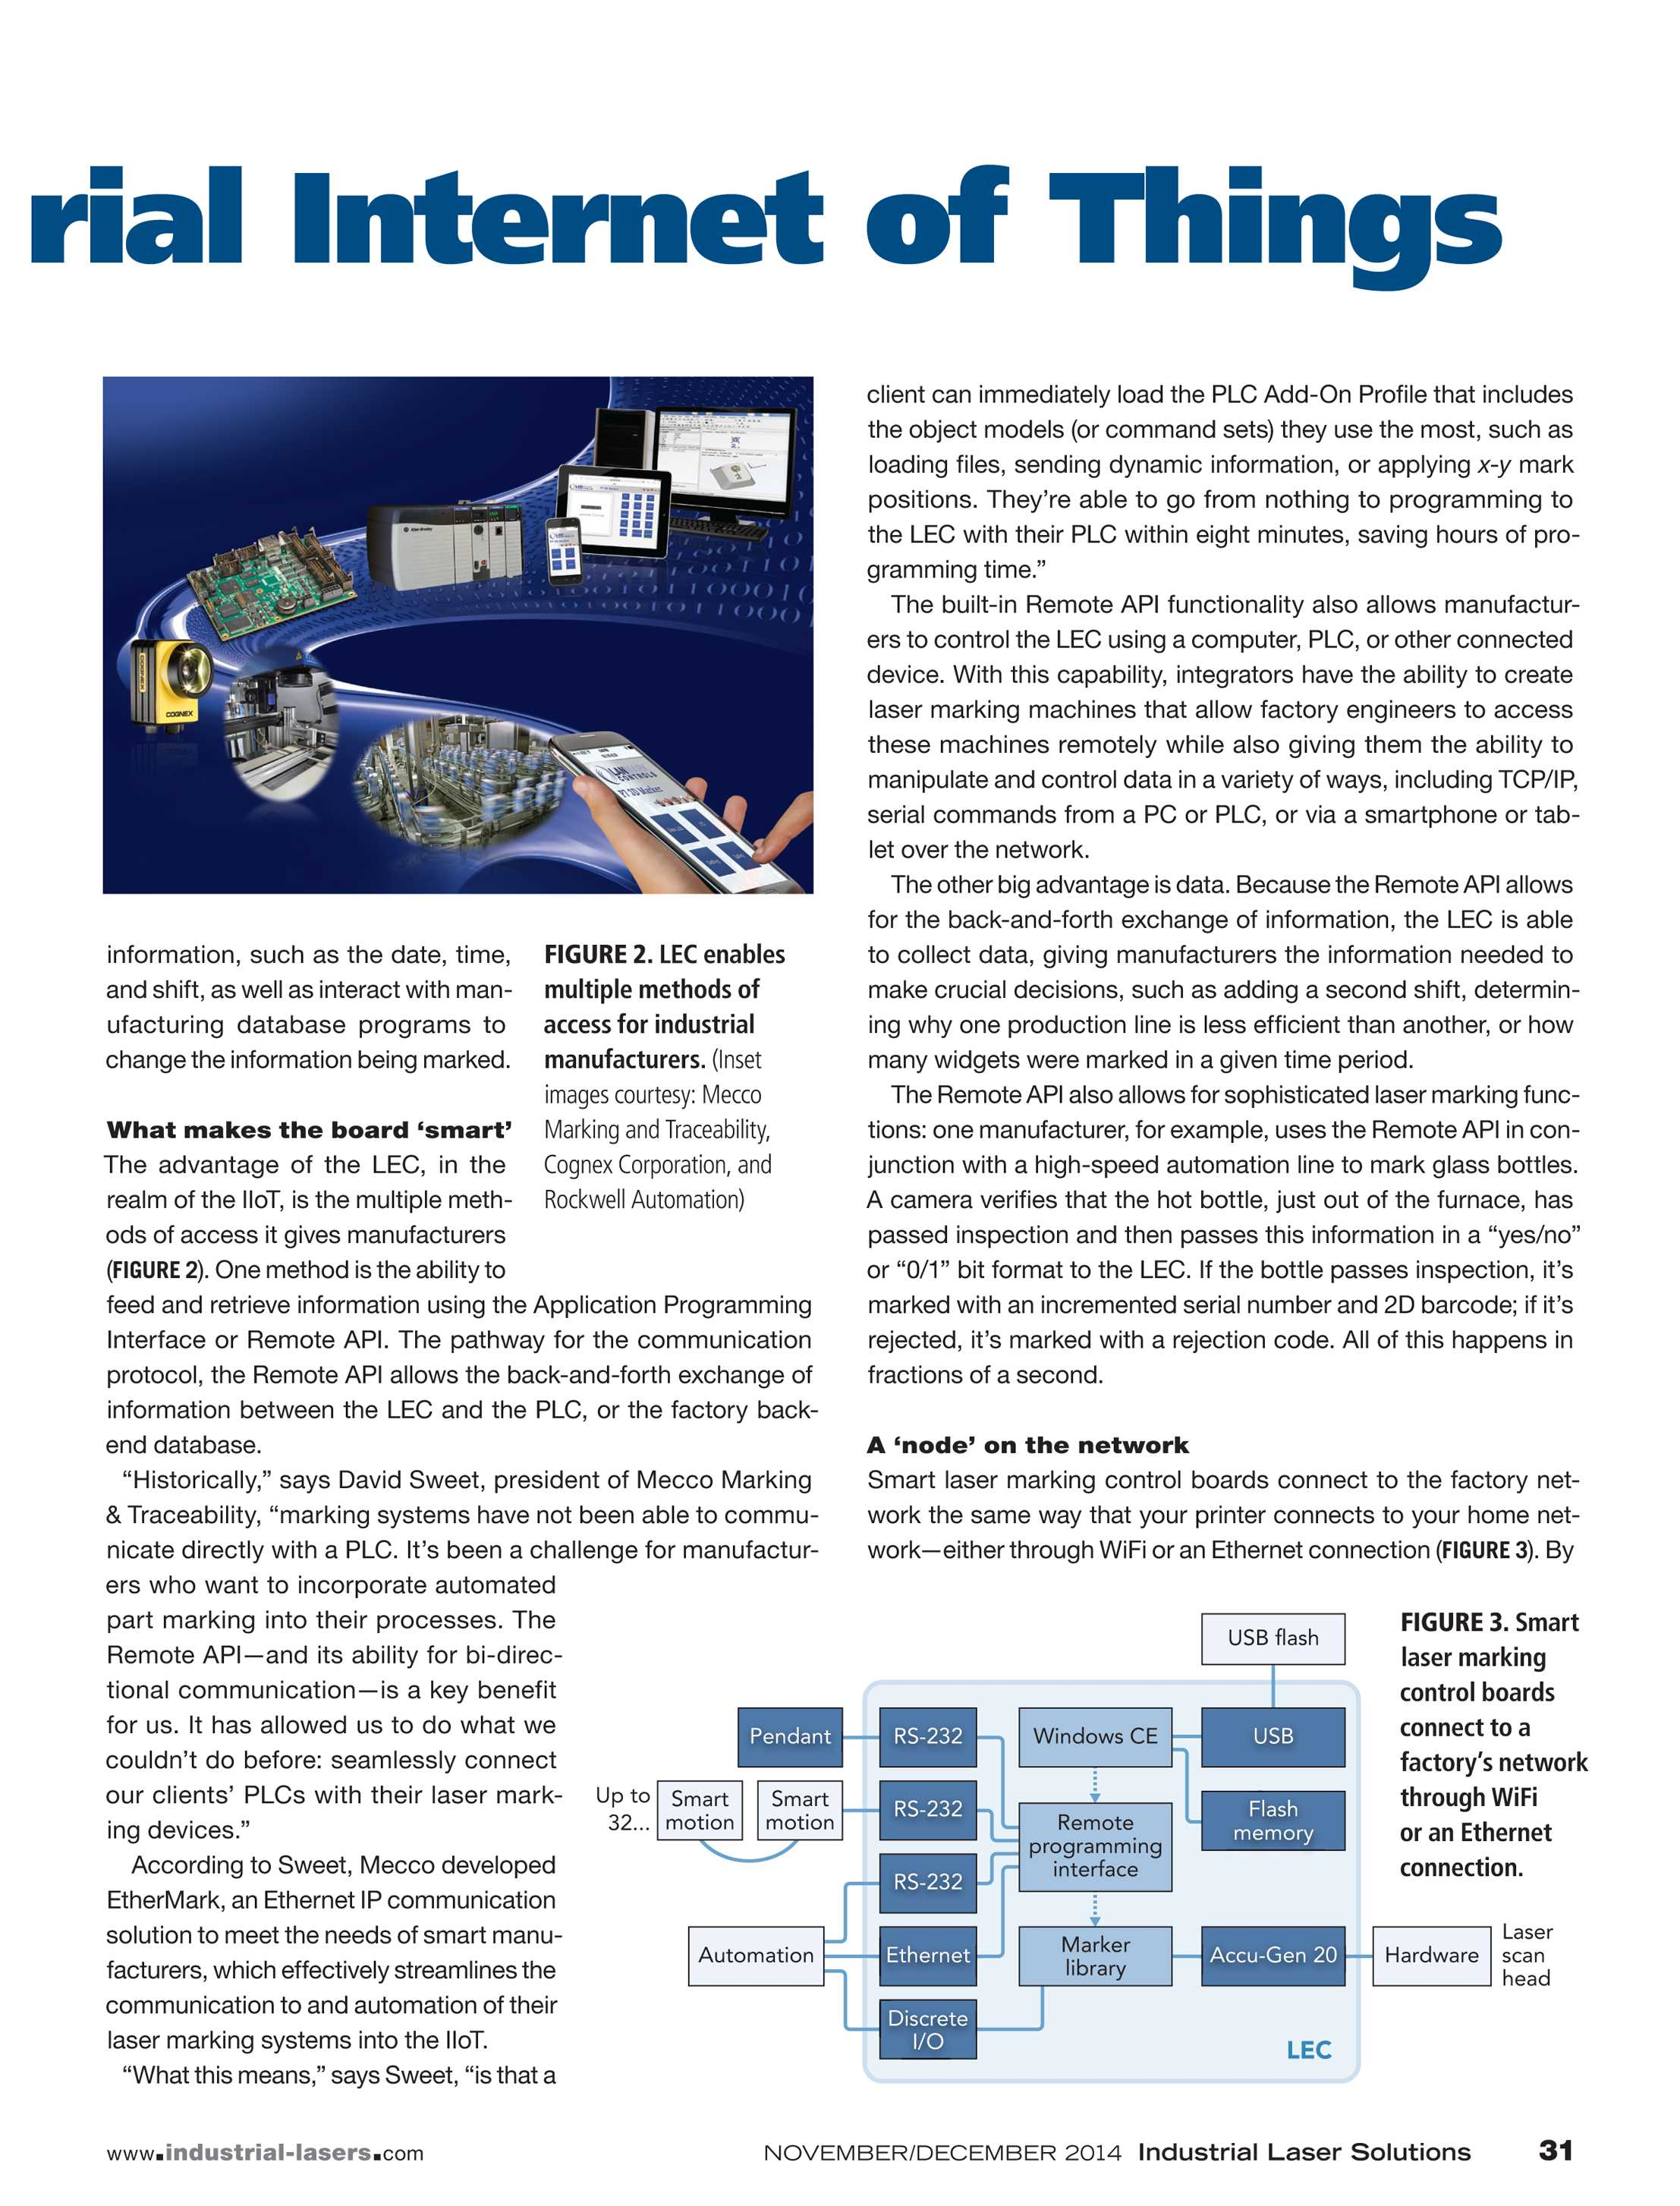 Industrial Laser Solutions November December 2014 Page 31 Marked 2d Bar Codes On Printed Circuit Board Marking Control Boards